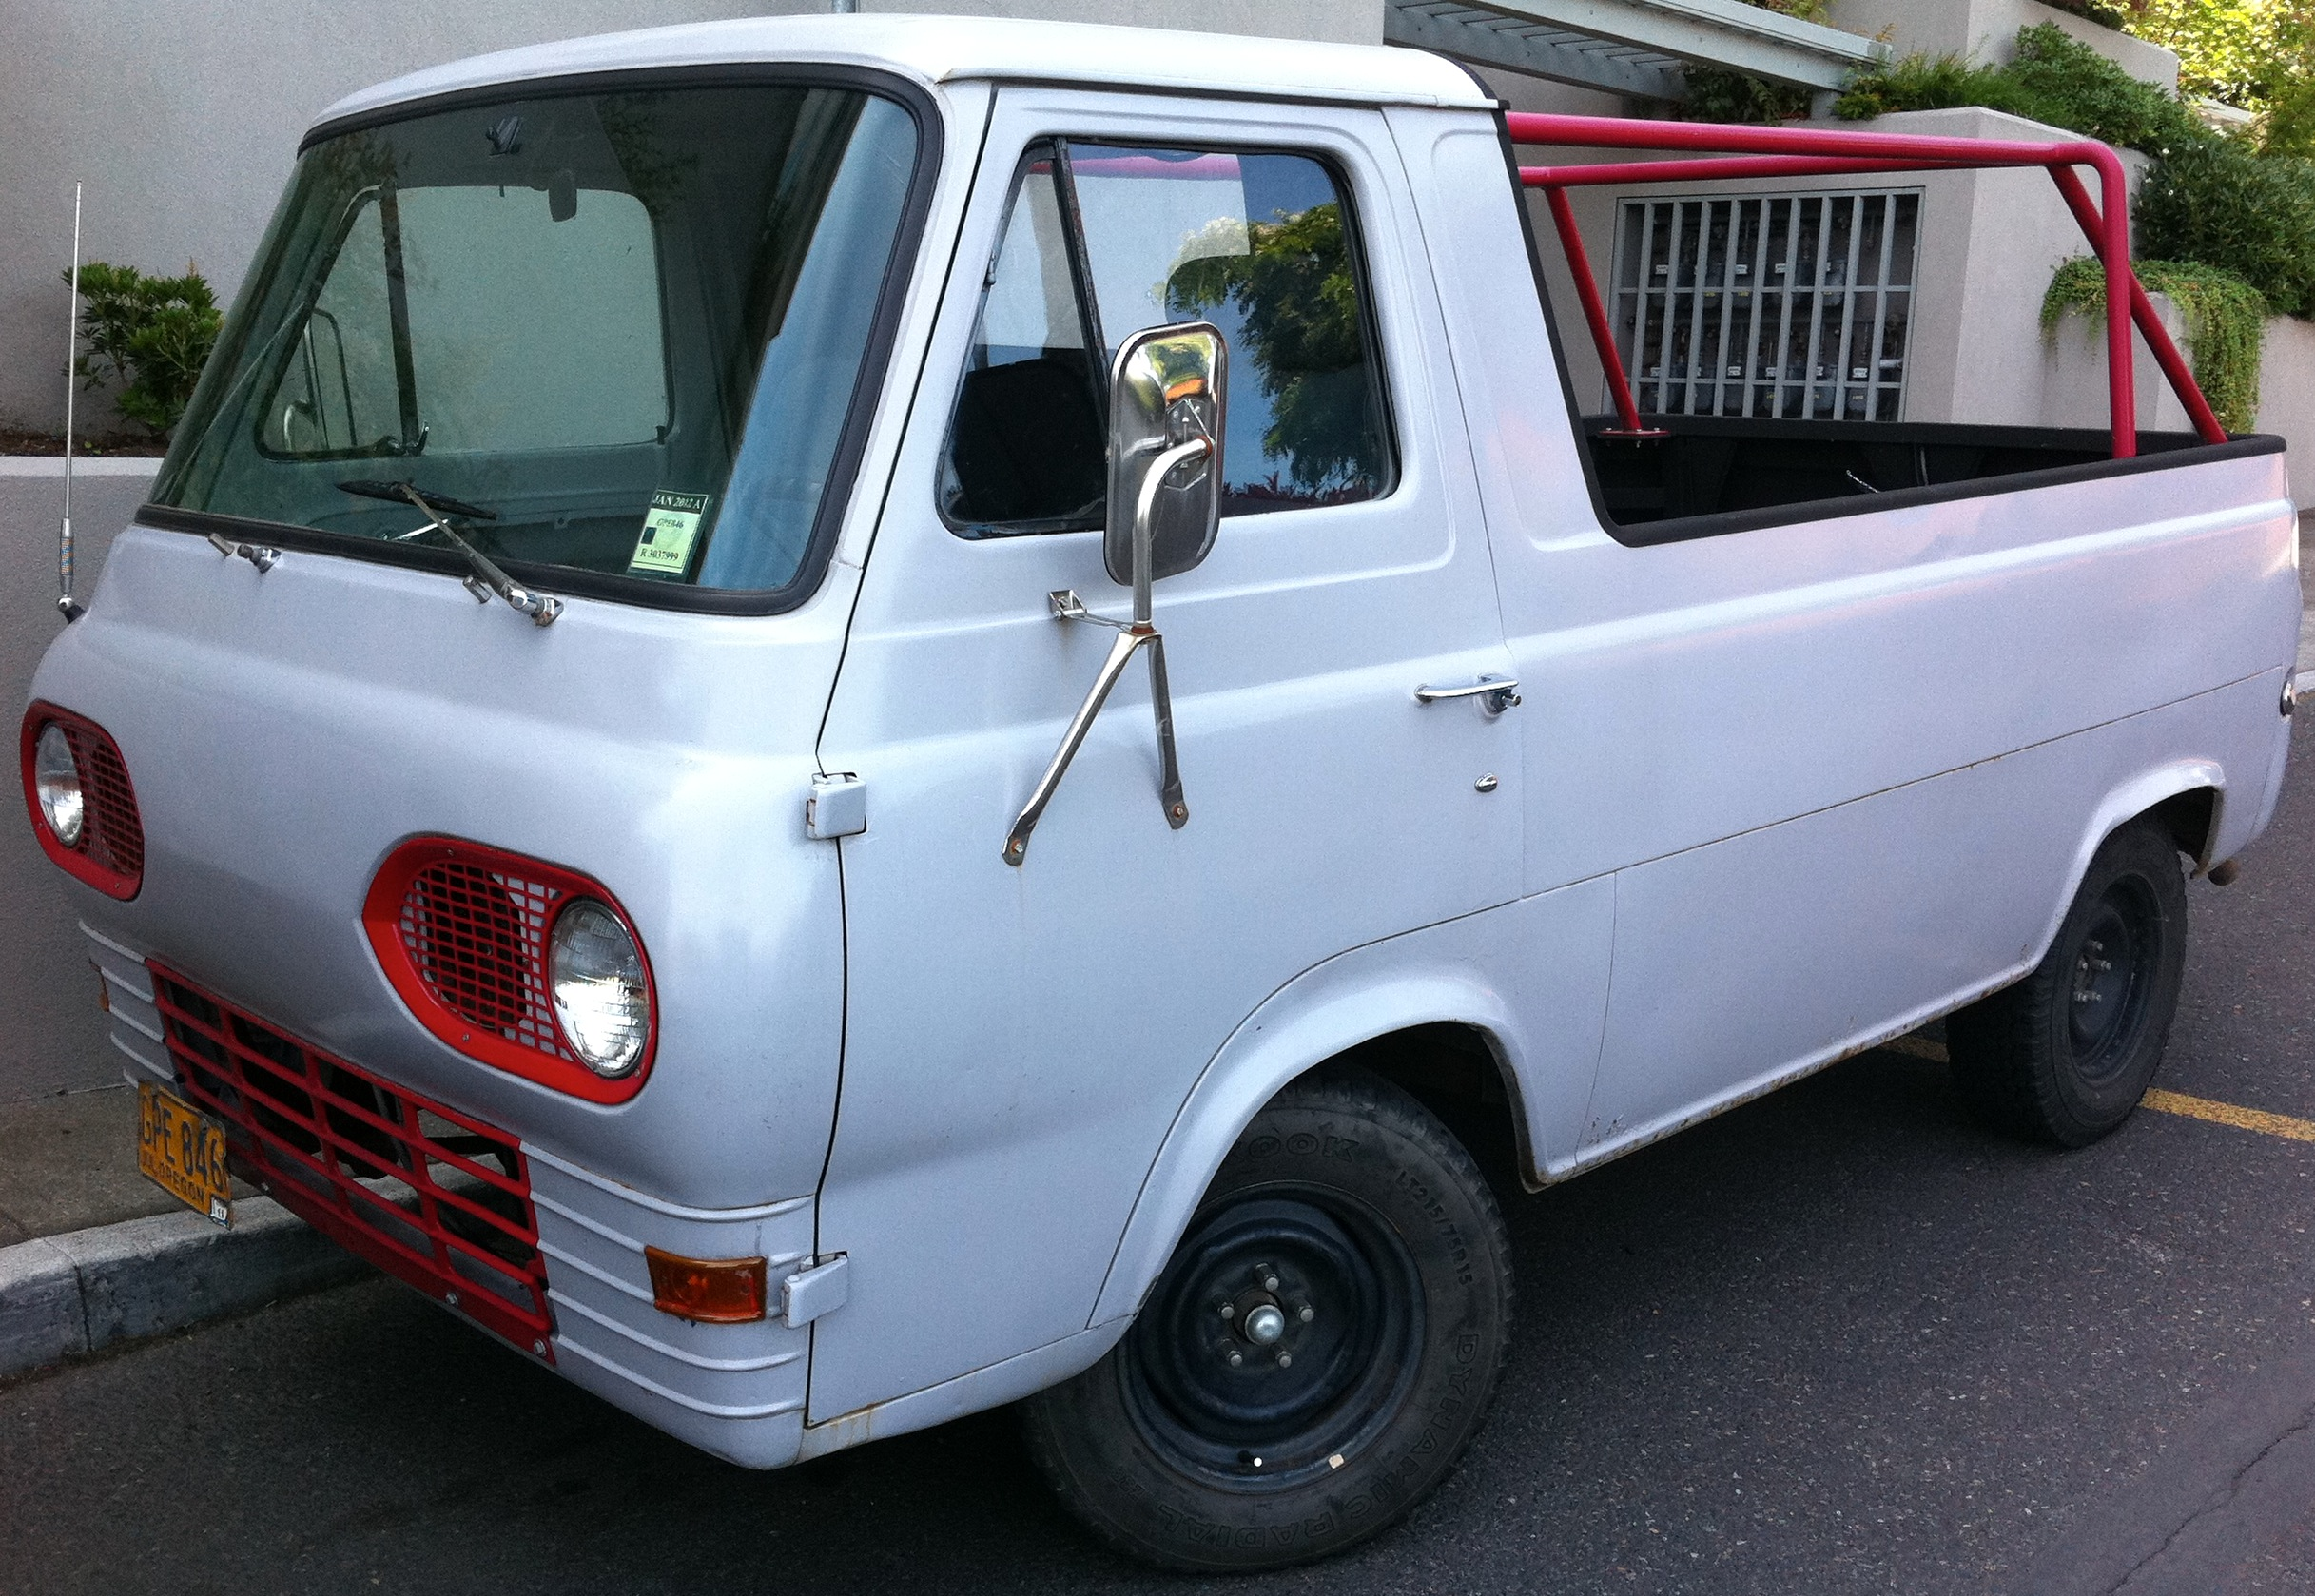 Used Pickup Trucks For Sale Craigslist 1961 Ford Dump Truck Photos Of